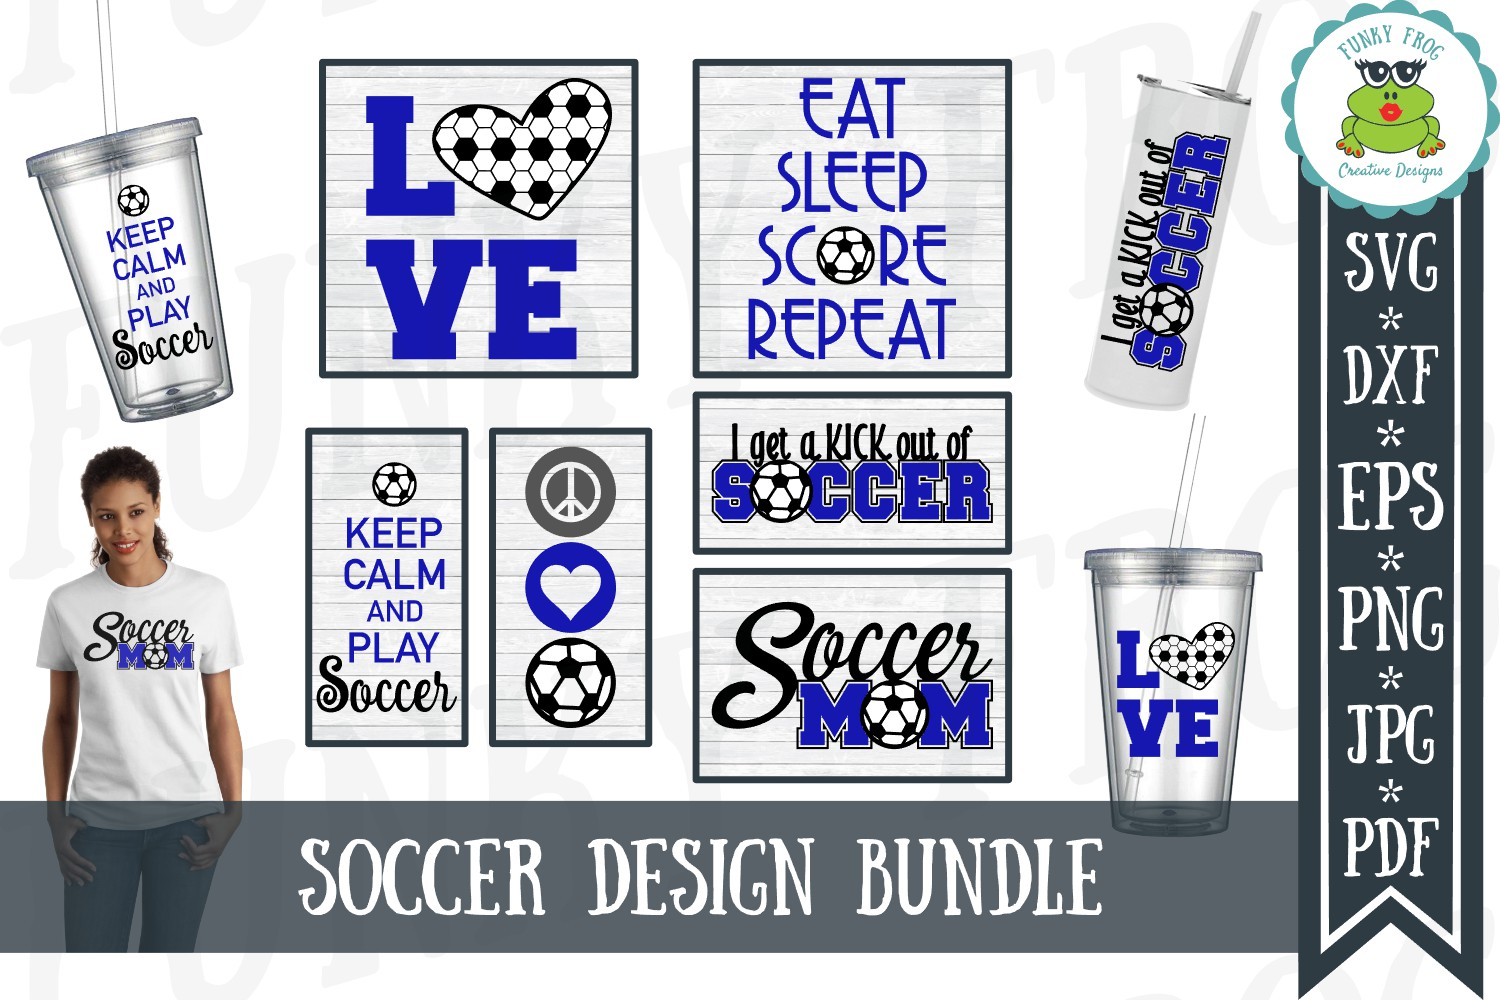 Download Free Soccer Design Bundle Graphic By Funkyfrogcreativedesigns for Cricut Explore, Silhouette and other cutting machines.